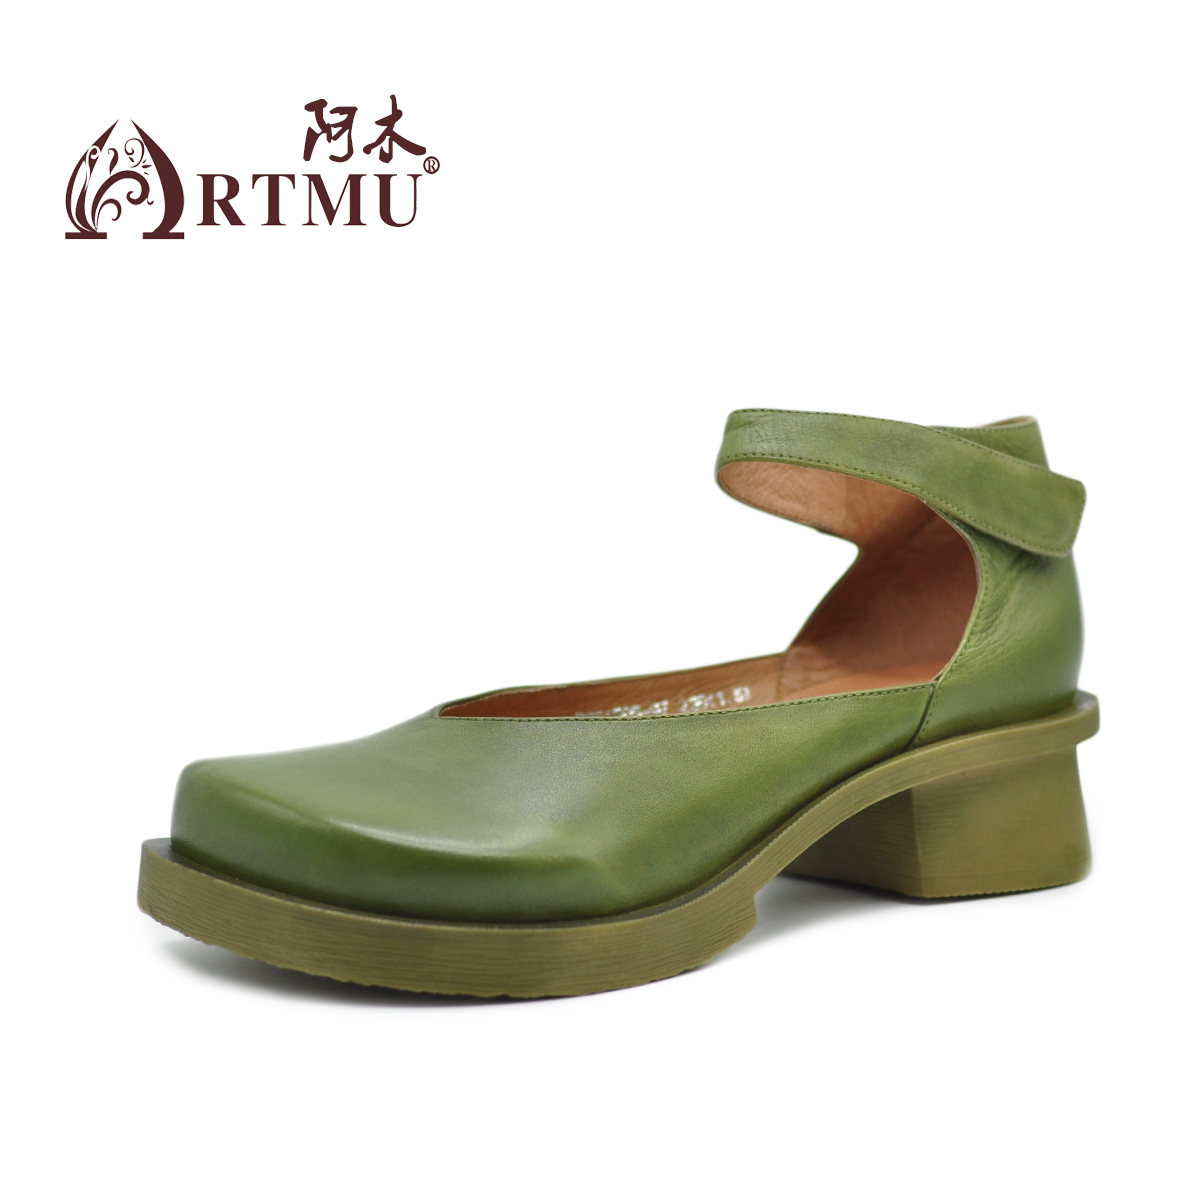 Artmu Original Retro Personality Shallow Women's Shoes Female Genuine Leather Thick Heels Hook and Loop 2019 New Handmade Pumps